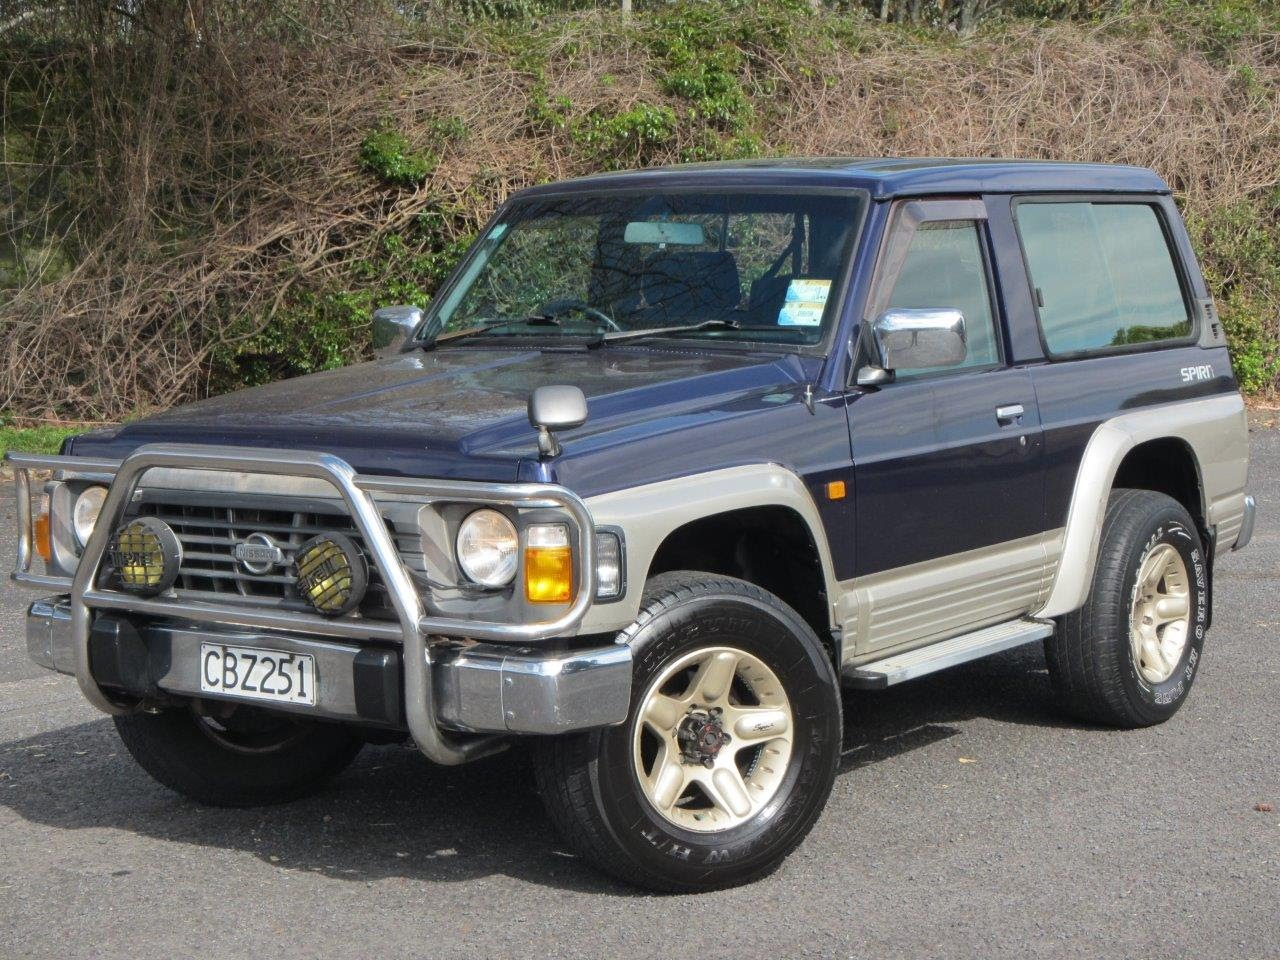 Nissan Safari IV (Y60) 1989 - 1997 SUV 3 door #7